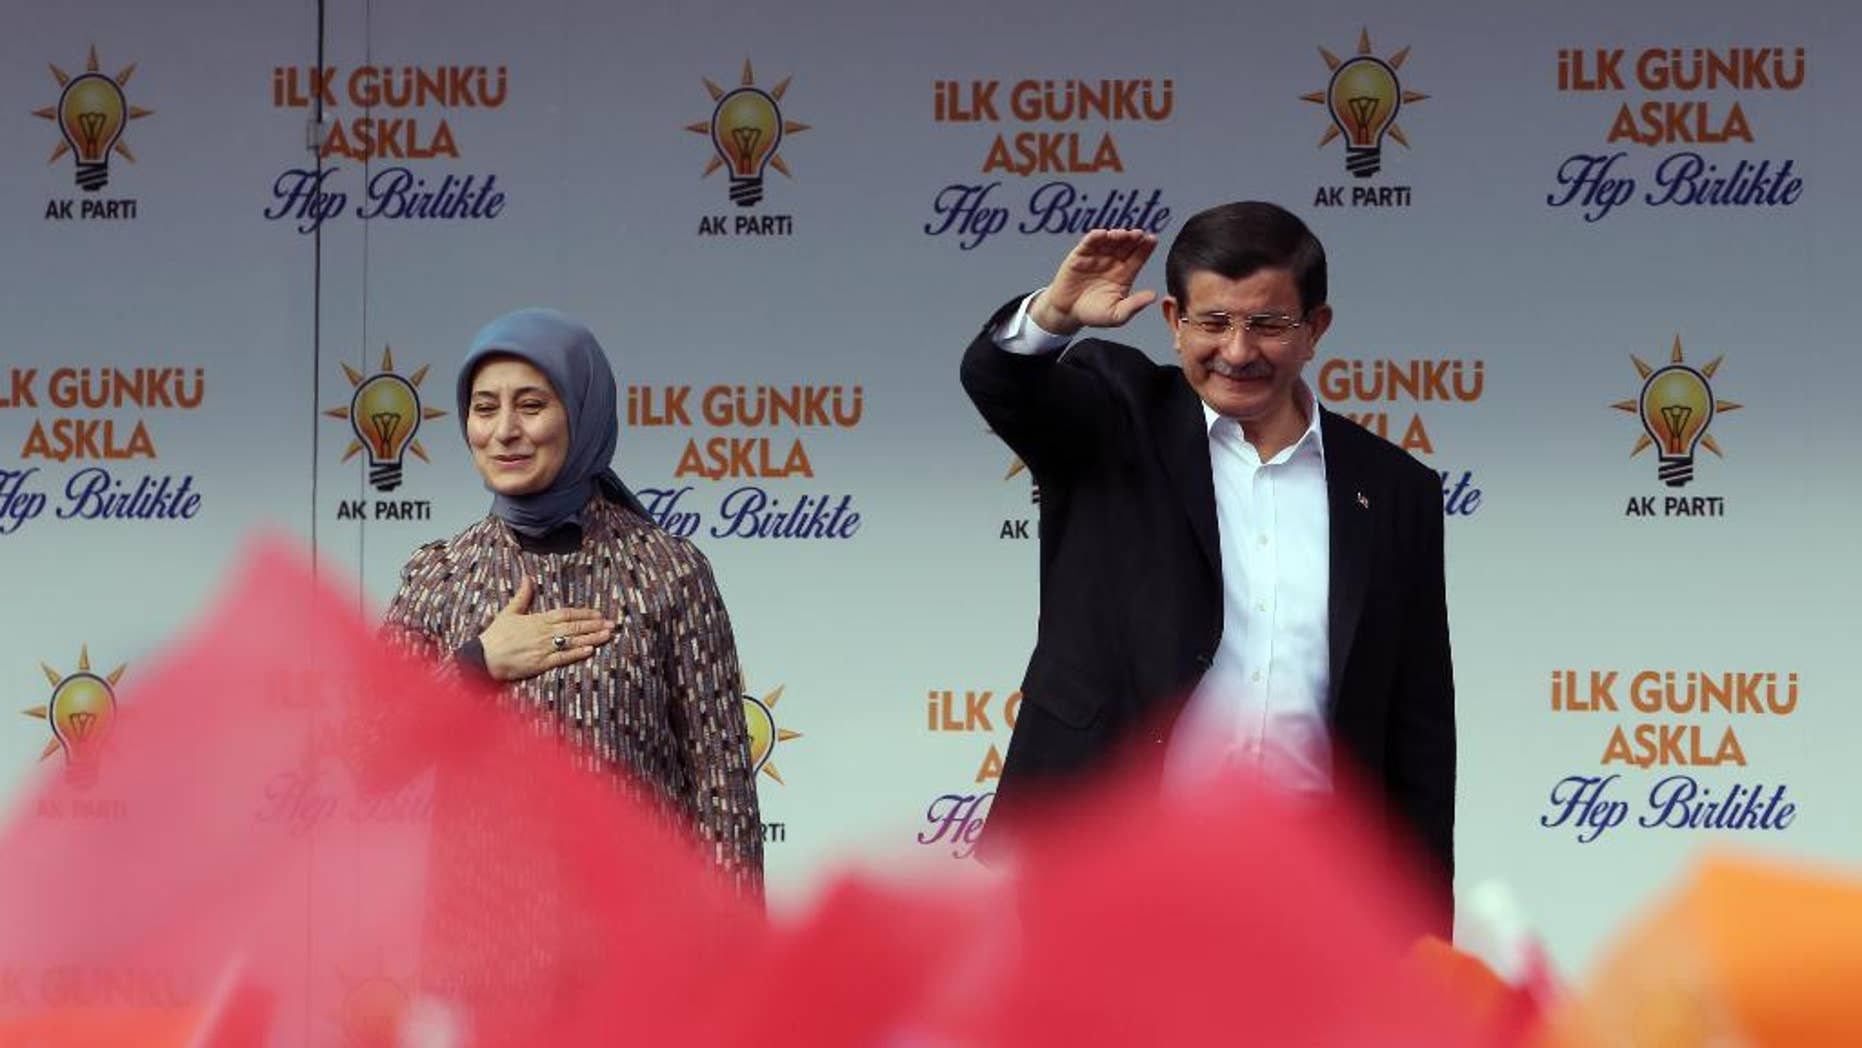 Turkish Prime Minister Ahmet Davutoglu and his wife Sare Davutoglu salute cheering supporters during a rally in Ankara, Turkey, Saturday, Oct. 31, 2015. (AP Photo/Burhan Ozbilici)